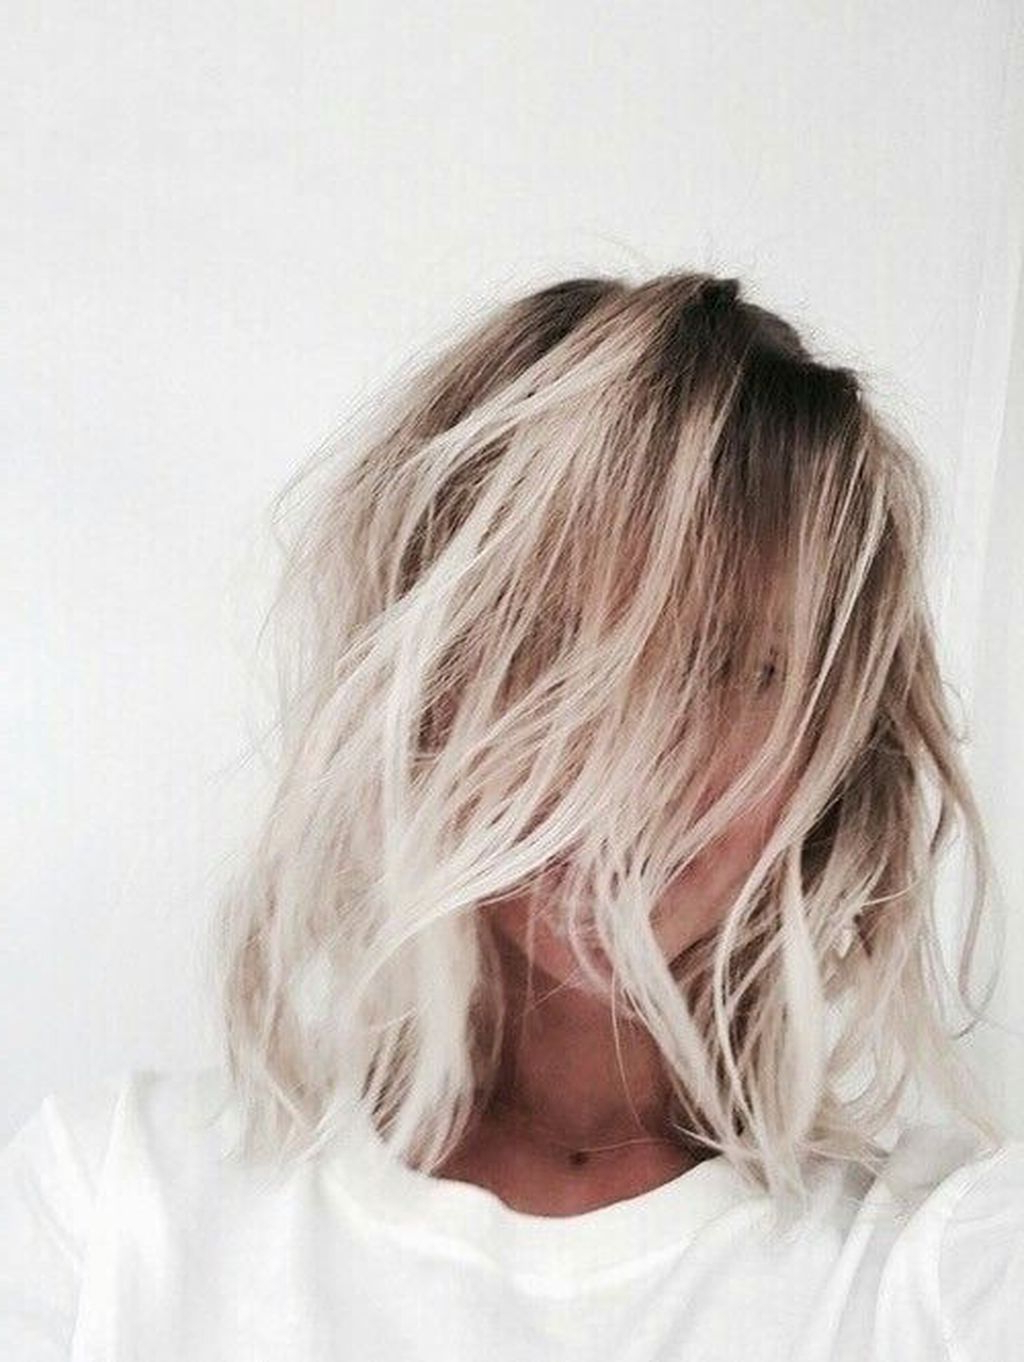 Well Liked Long Texture Revealing Layers Hairstyles Throughout 30+ Inspiring Textured Revealing Layered Haircuts Ideas (Gallery 11 of 20)